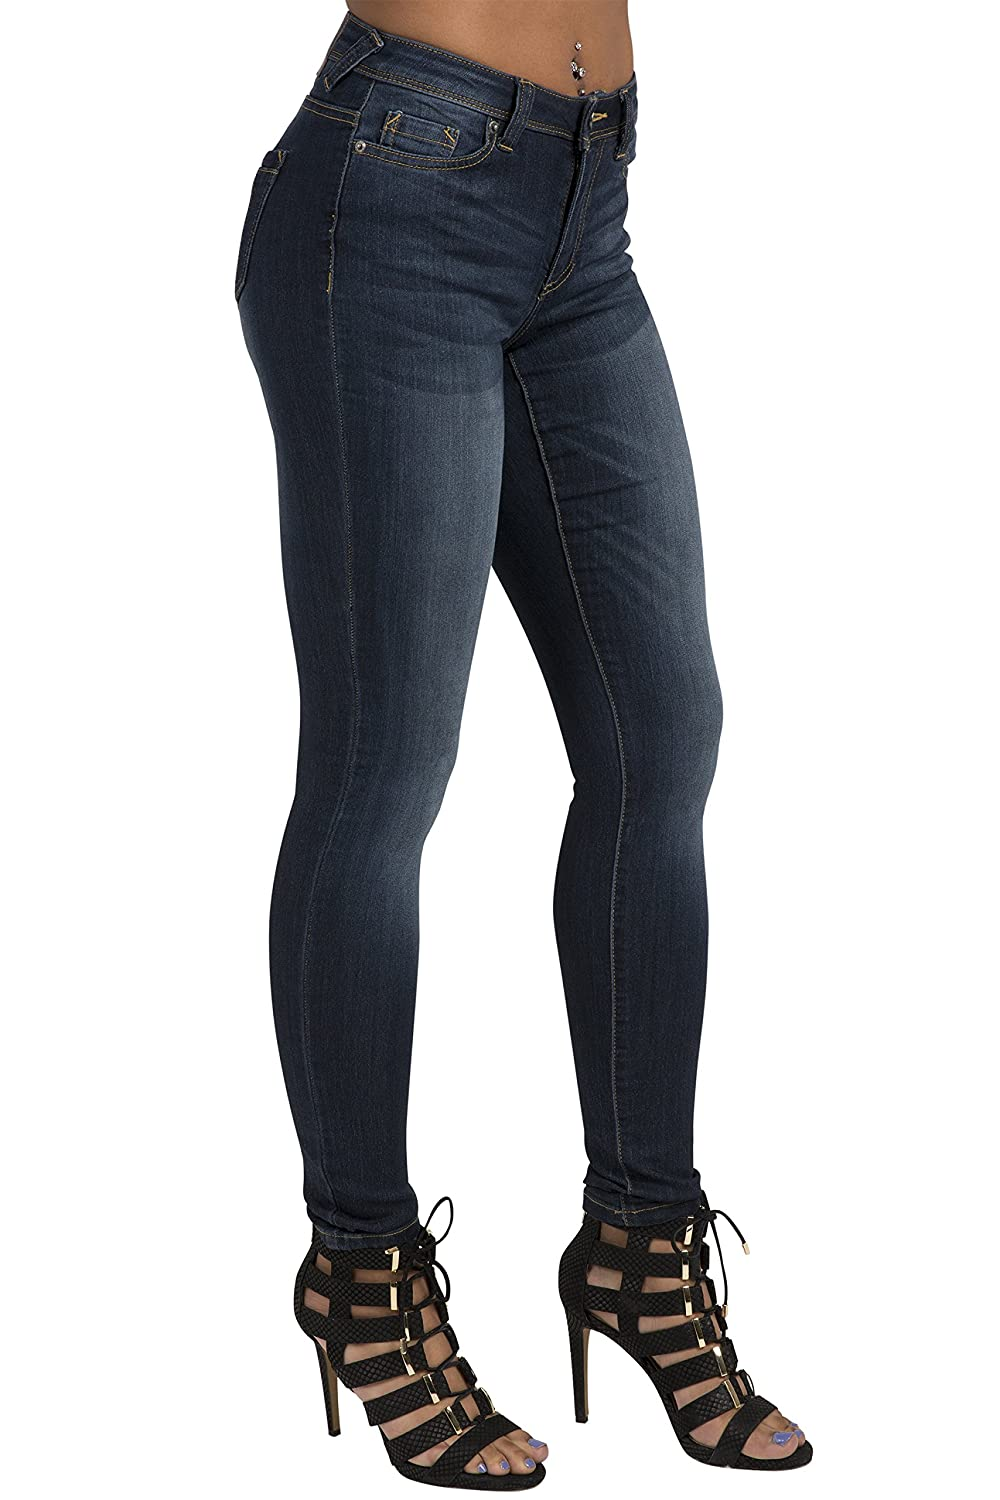 78b980d6254c Poetic Justice Women's Curvy Fit Stretch Denim Classic Skinny Jeans at  Amazon Women's Jeans store